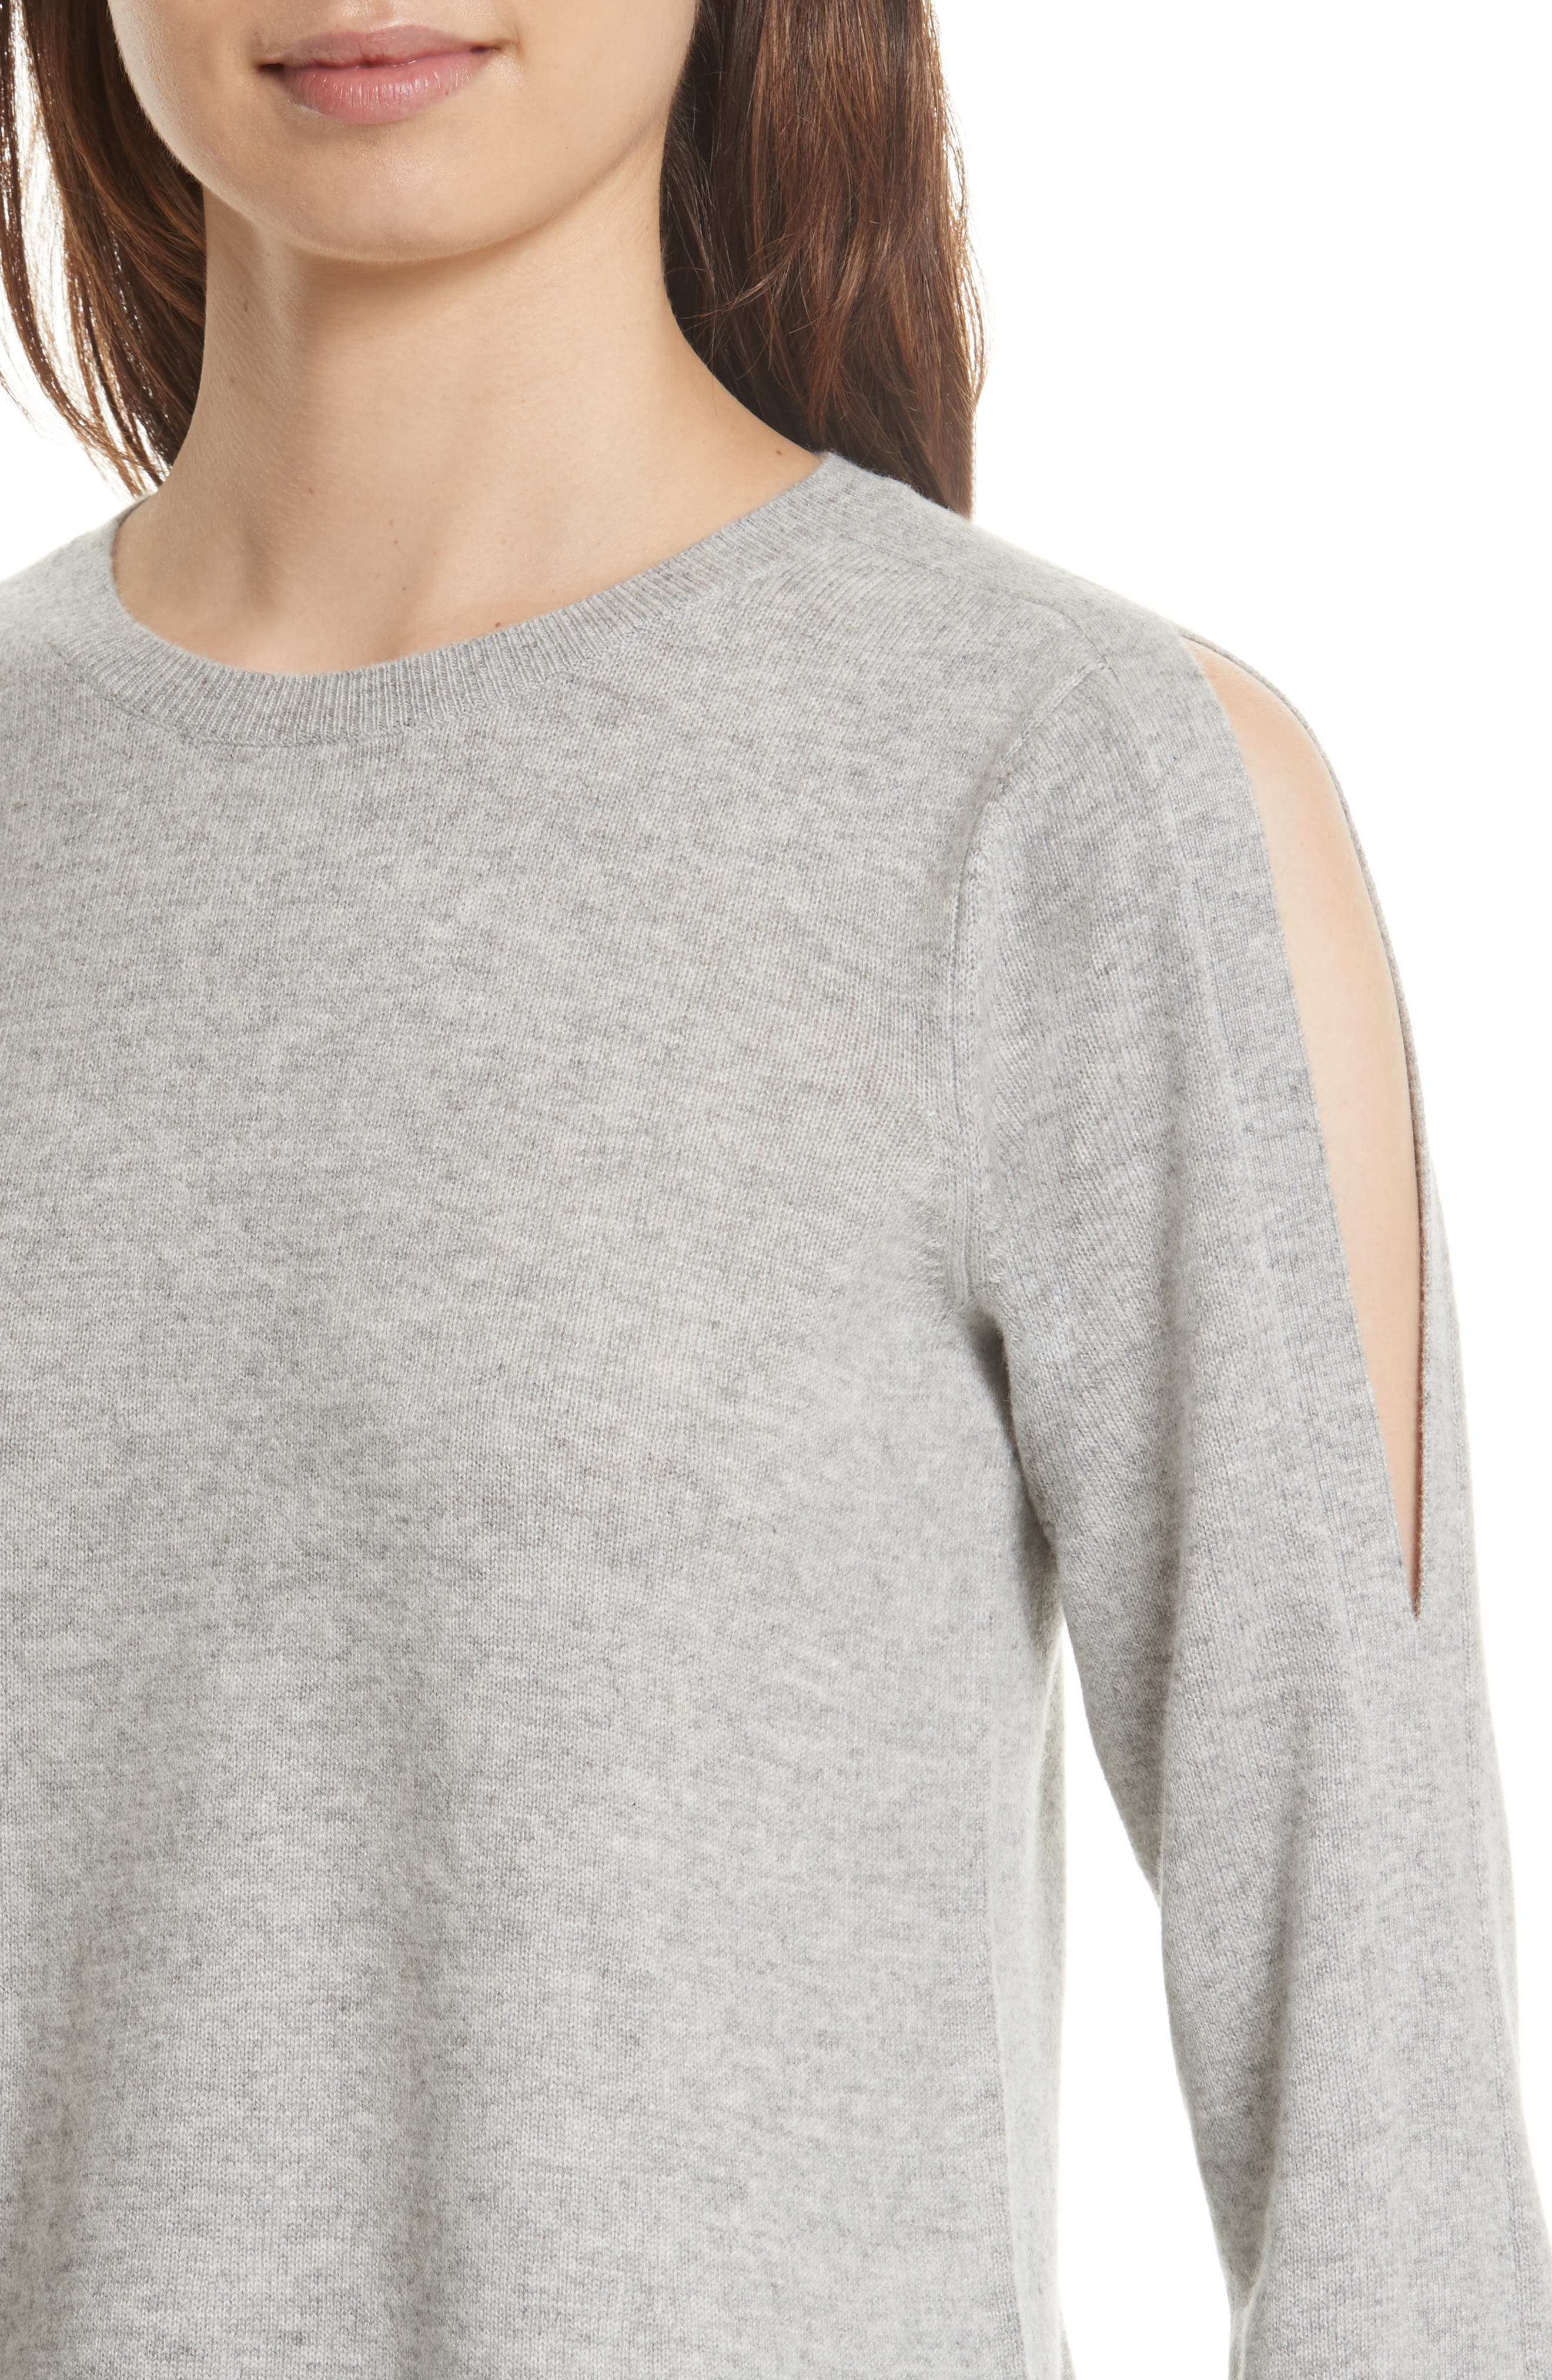 Amalyn Cold Shoulder Wool & Cashmere Sweater,                             Alternate thumbnail 4, color,                             Ash Heather Grey